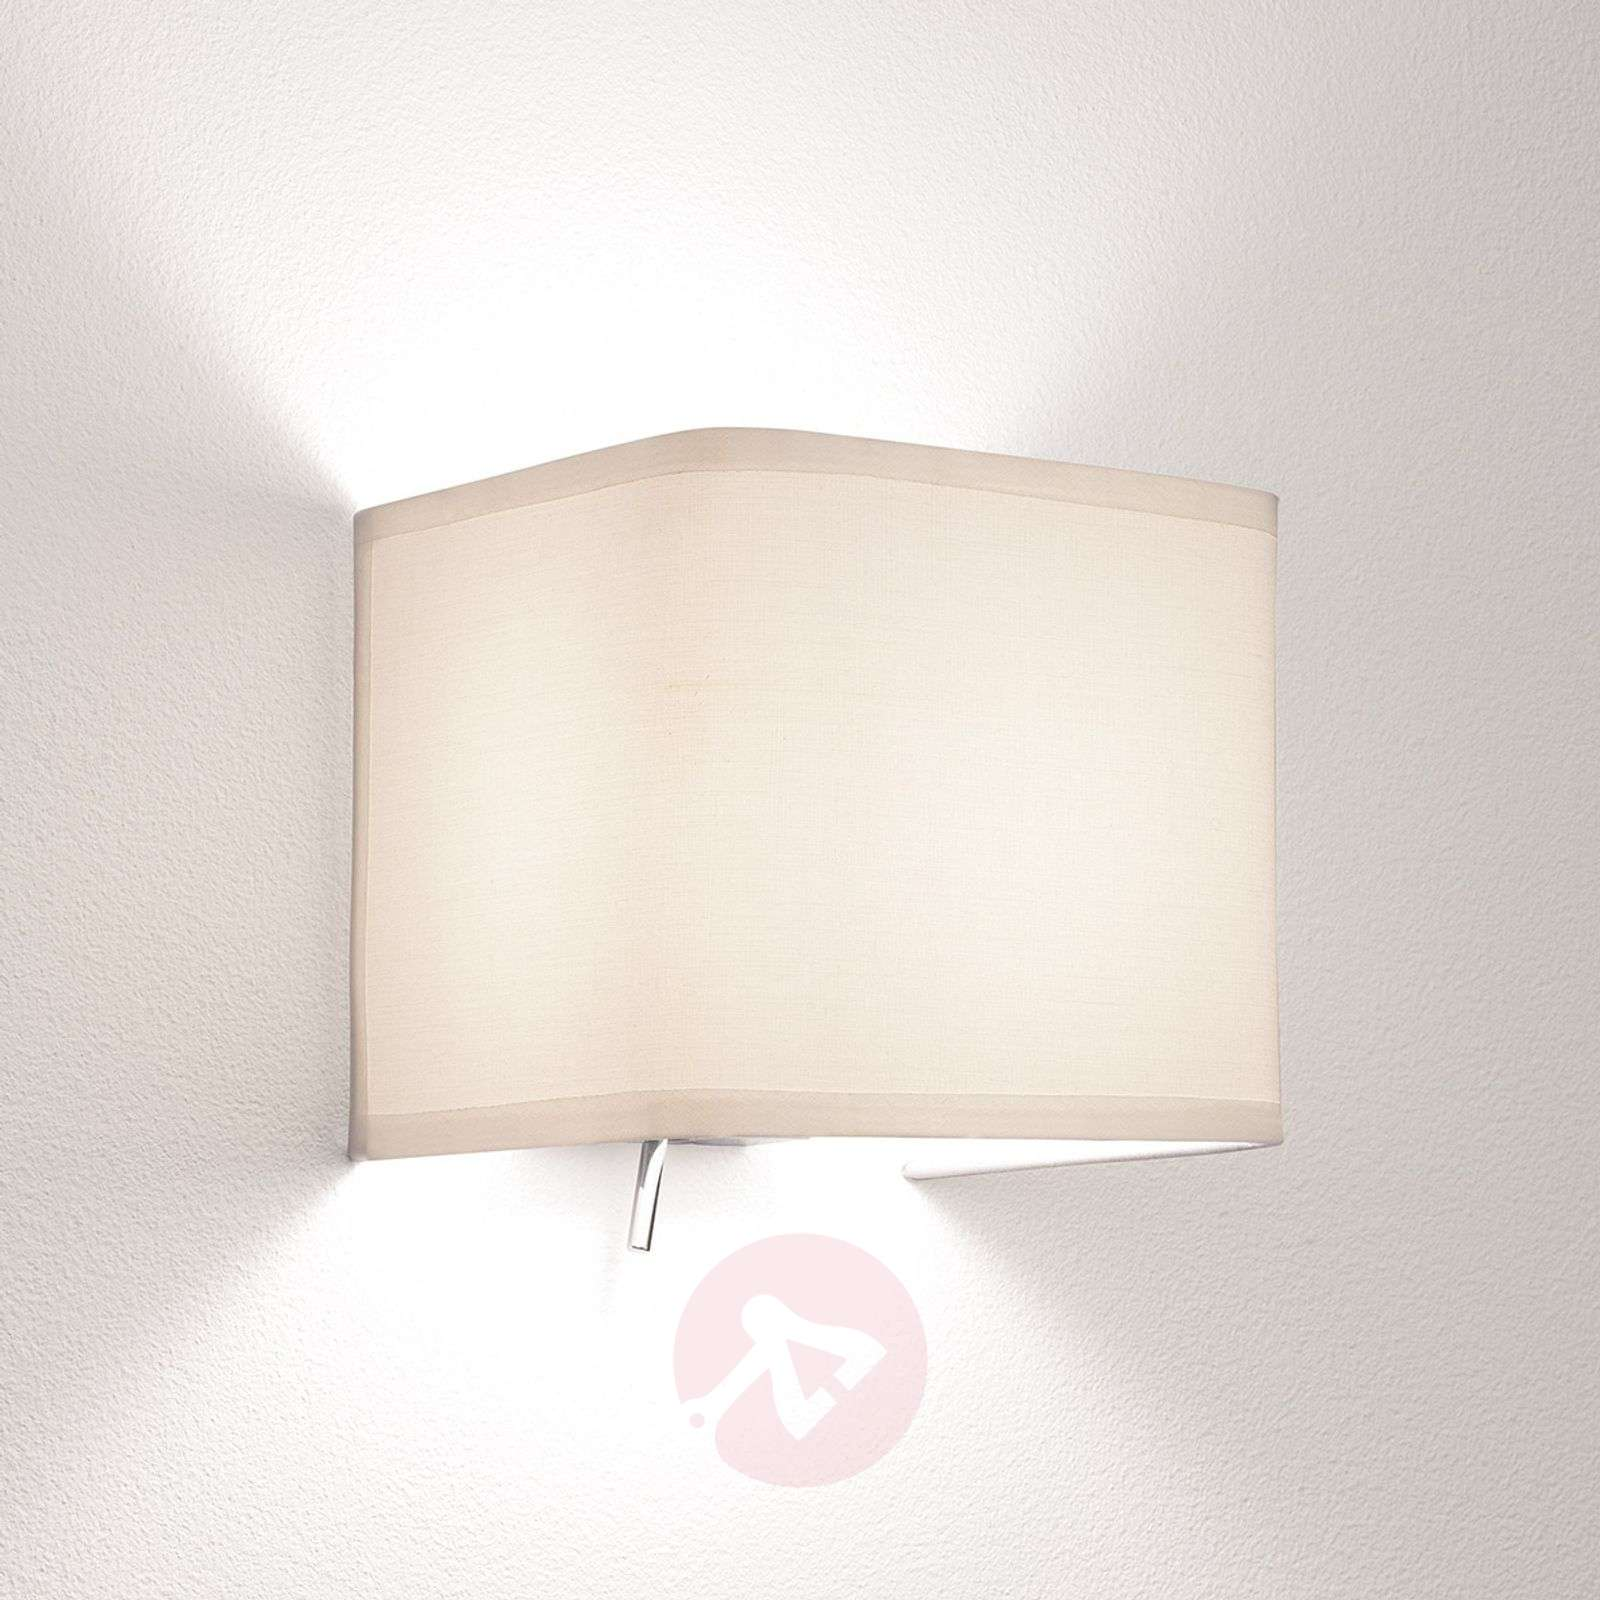 Ashino Wall Light with Switch Stylish-1020216-02